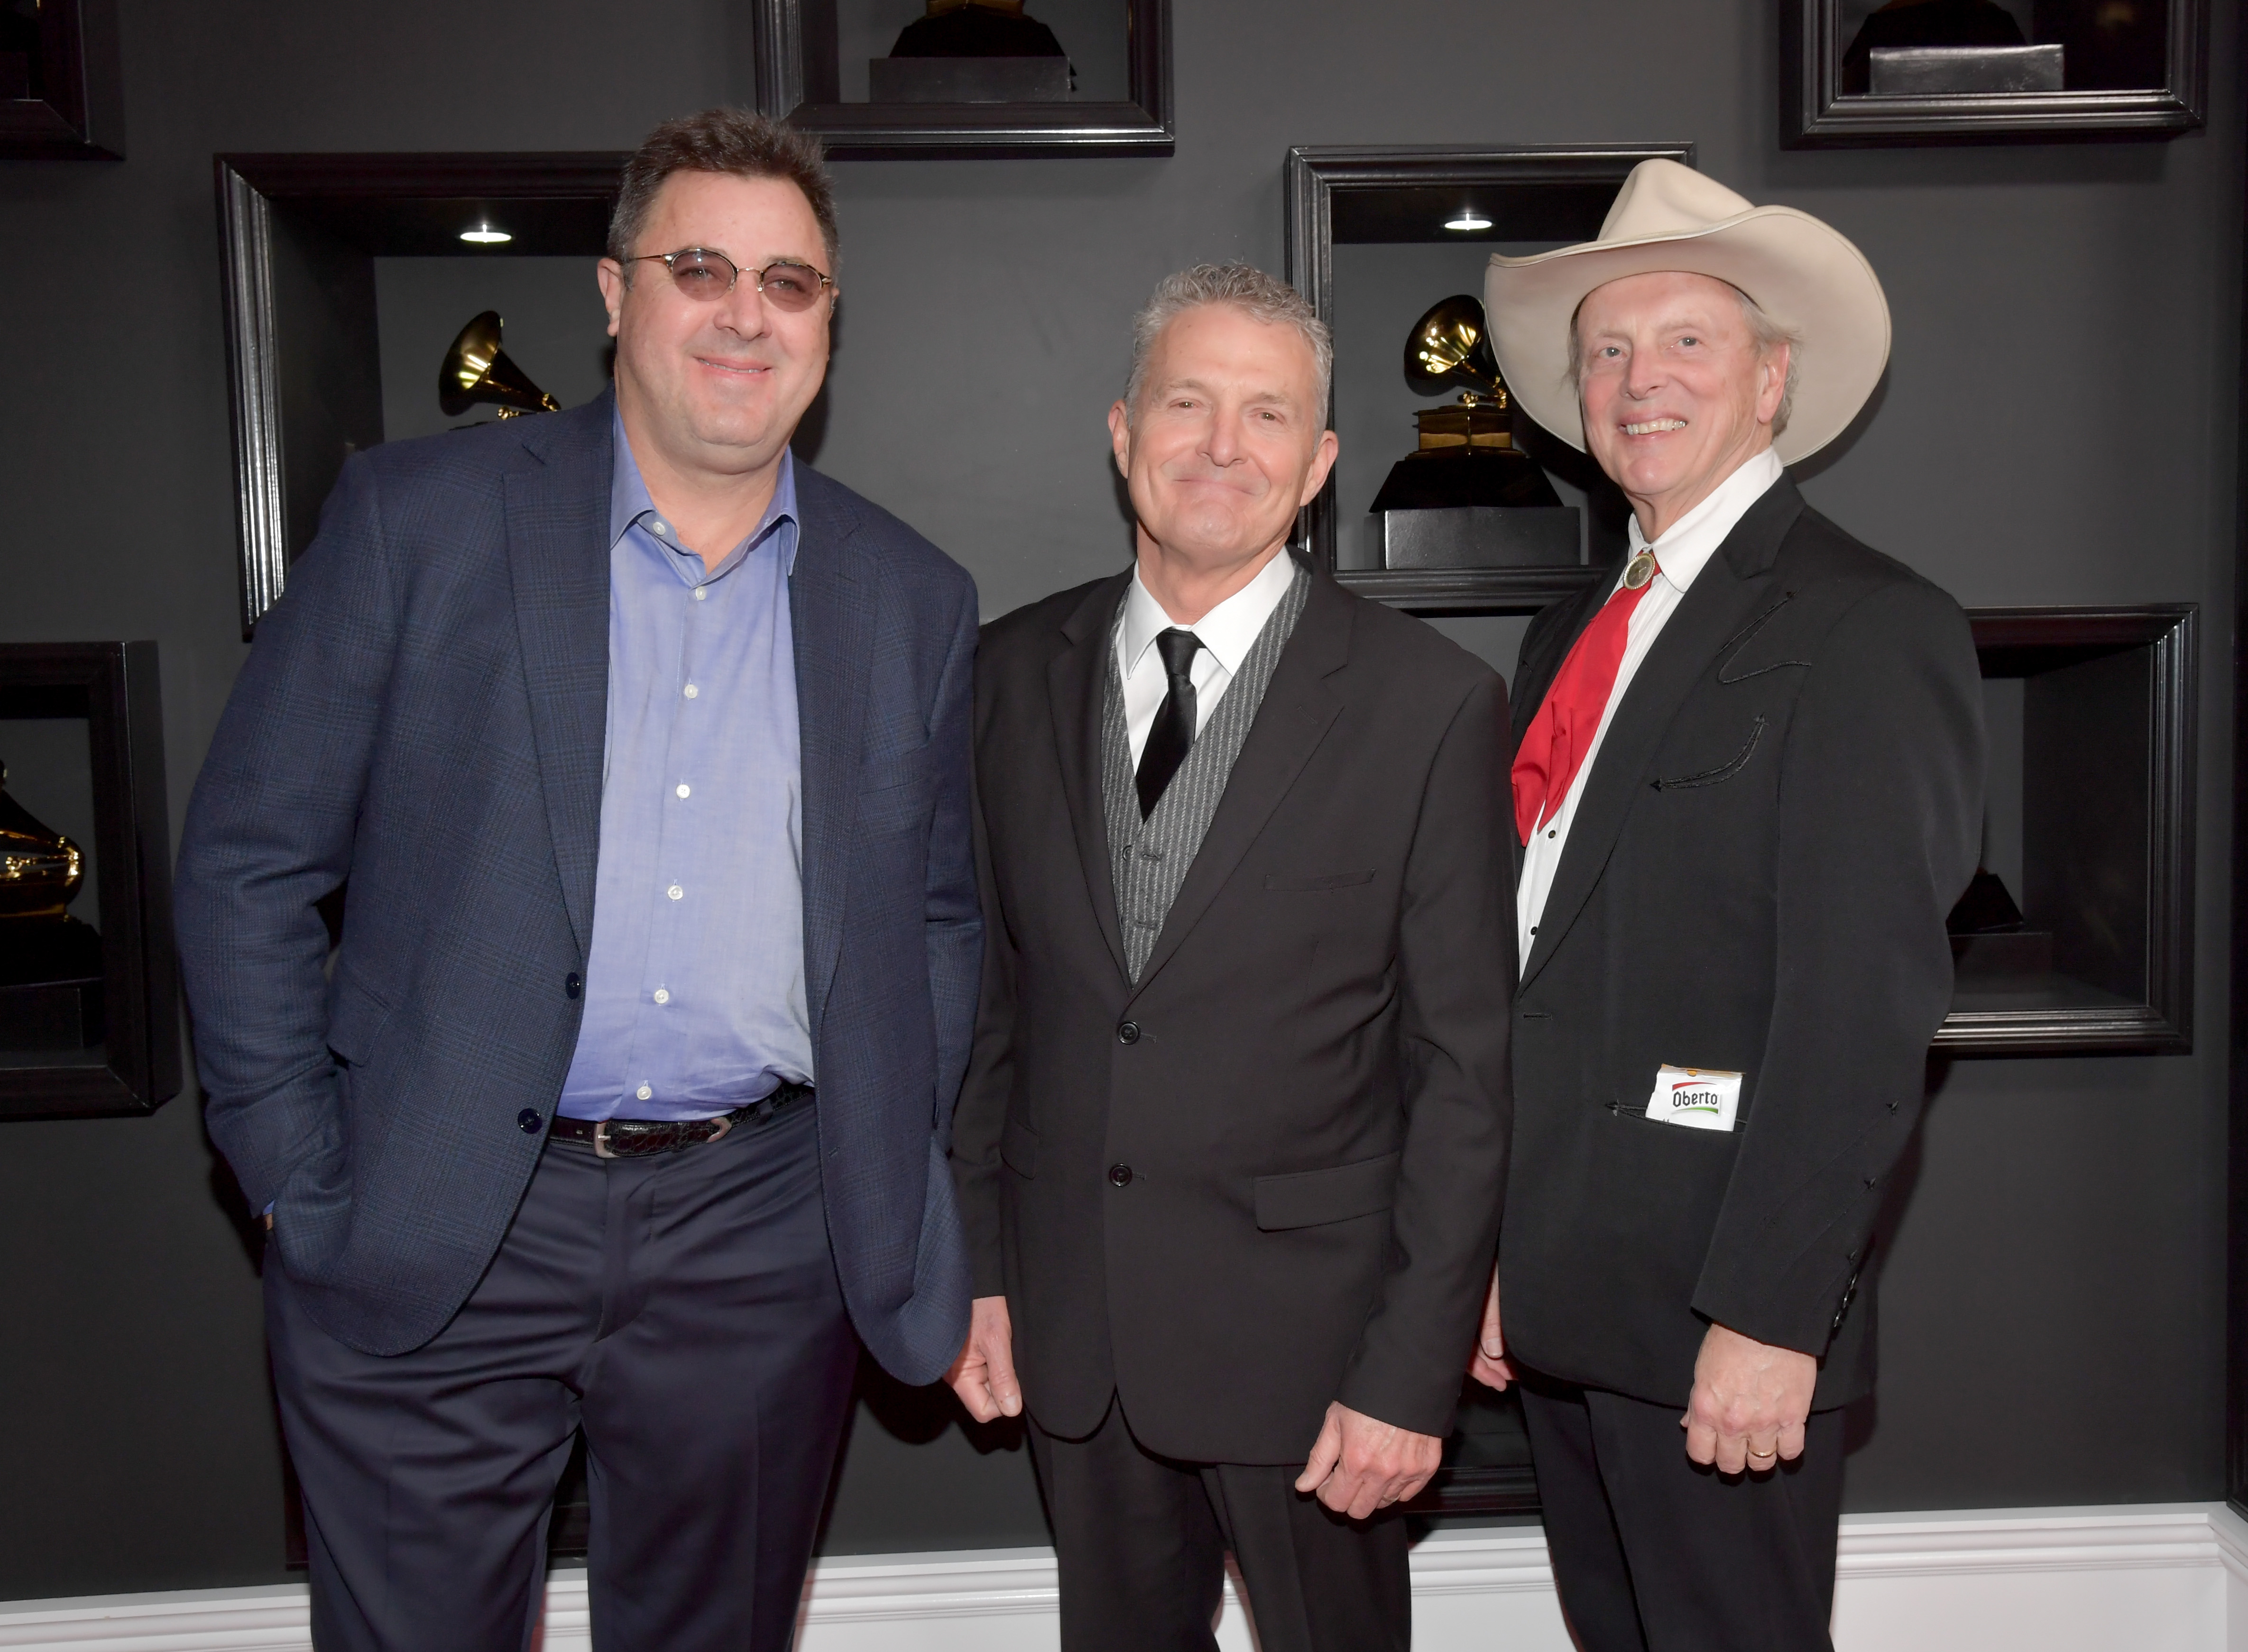 Vince Gill with Billy Thomas and Douglas B. Green of music group The Time Jumpers attend The 59th GRAMMY Awards; Photo by Lester Cohen/WireImage